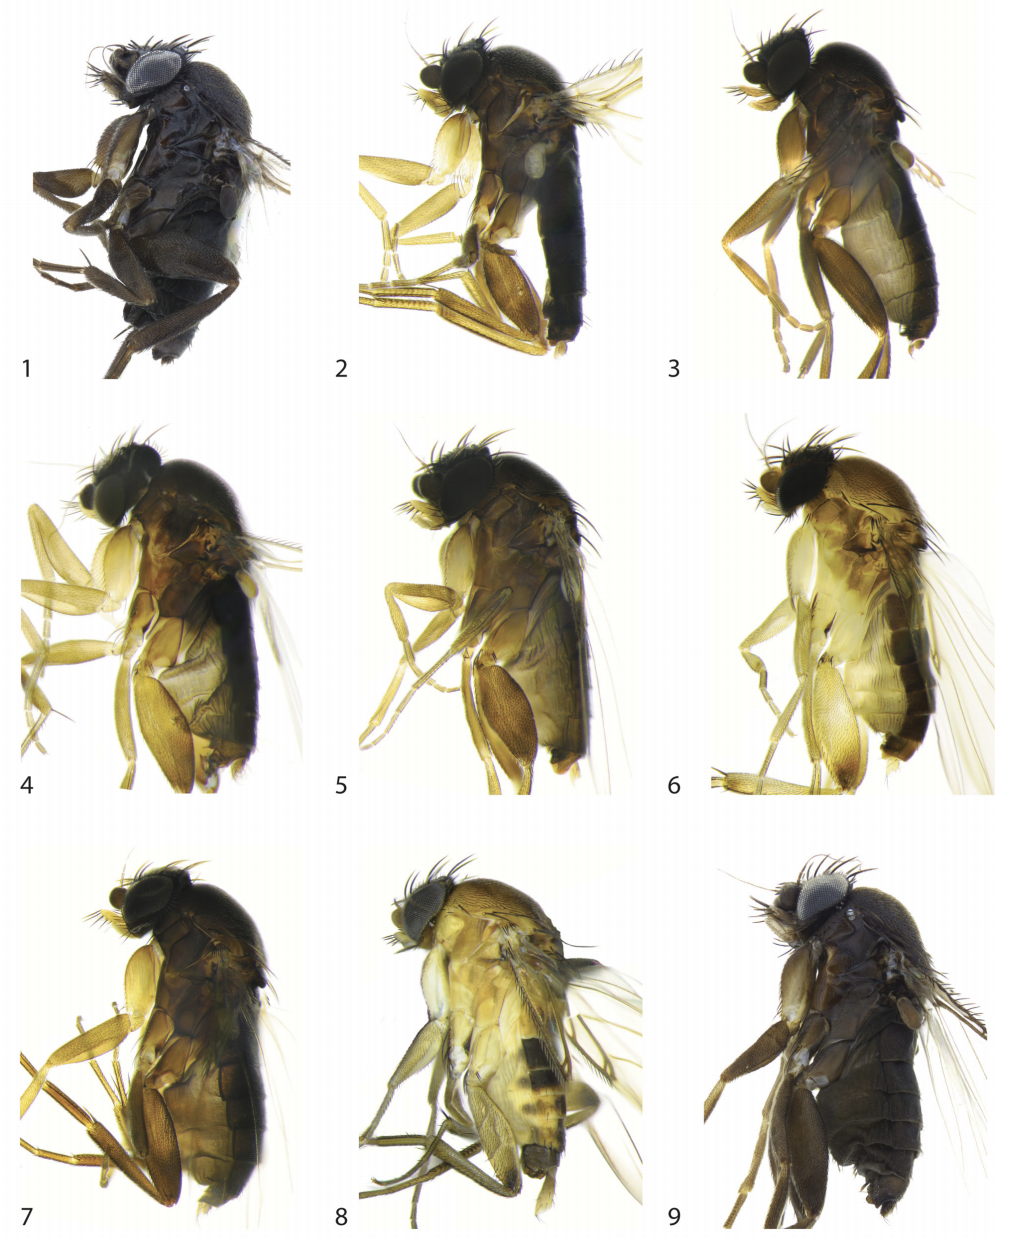 Nine of the 30 new species of phorid flies discovered by Emily Hartop and colleagues in Los Angeles, photo reproduced from: Hartop EA, Brown BV, Disney RH. Opportunity in our ignorance: urban biodiversity study reveals 30 new species and one new Nearctic record for Megaselia (Diptera: Phoridae) in Los Angeles (California, USA).  Zootaxa , 2015; 3941(4)